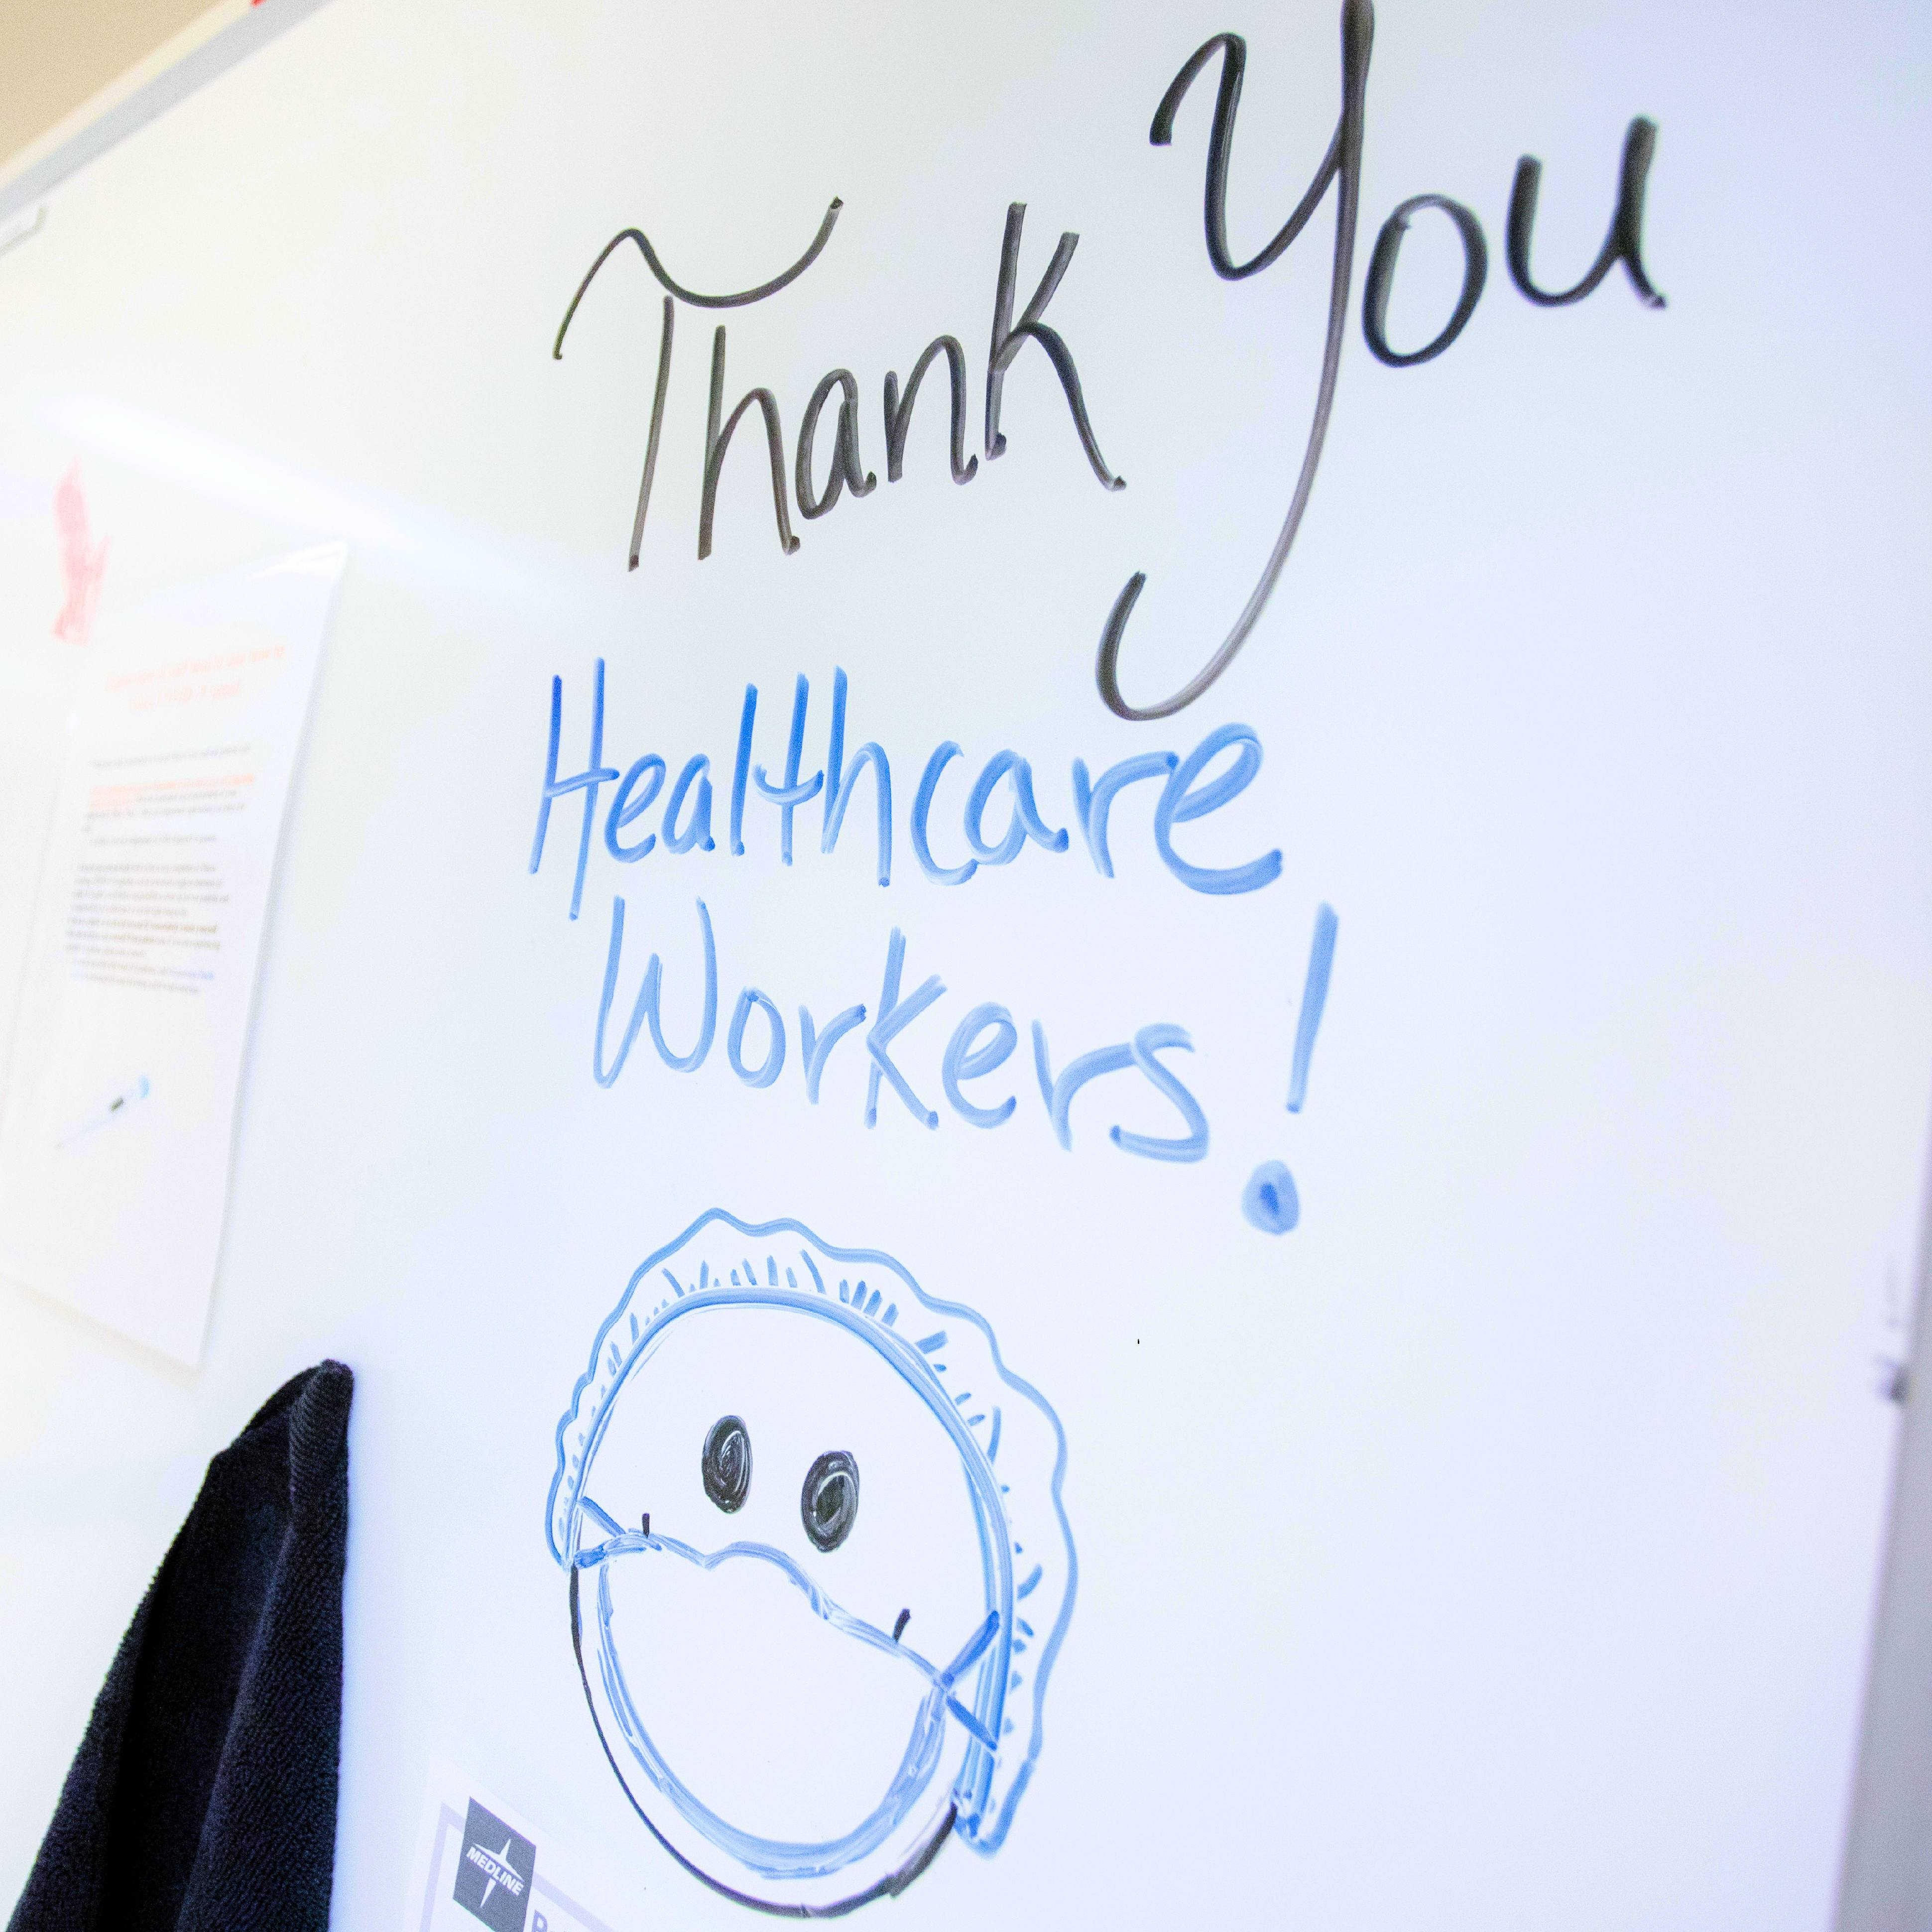 a 'Thank You Healthcare Workers' sign on a wipe board in a hospital hallway